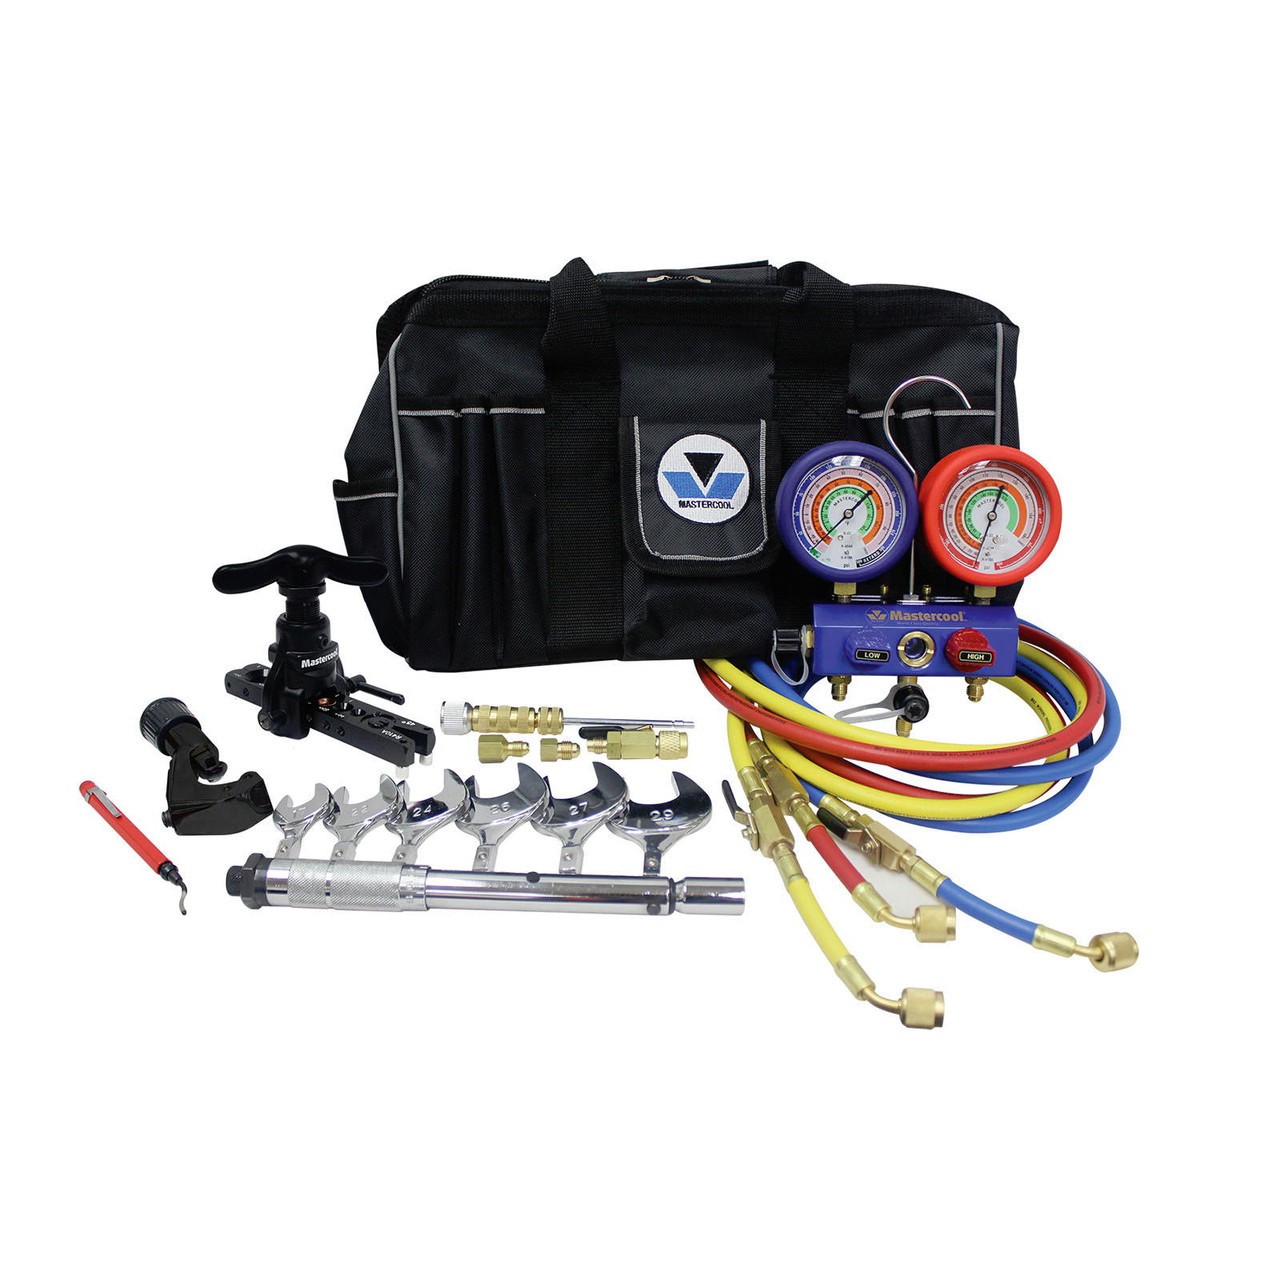 Air Conditioning Tools >> Mastercool 70200 Msk Mini Split Air Conditioner Tool Kit